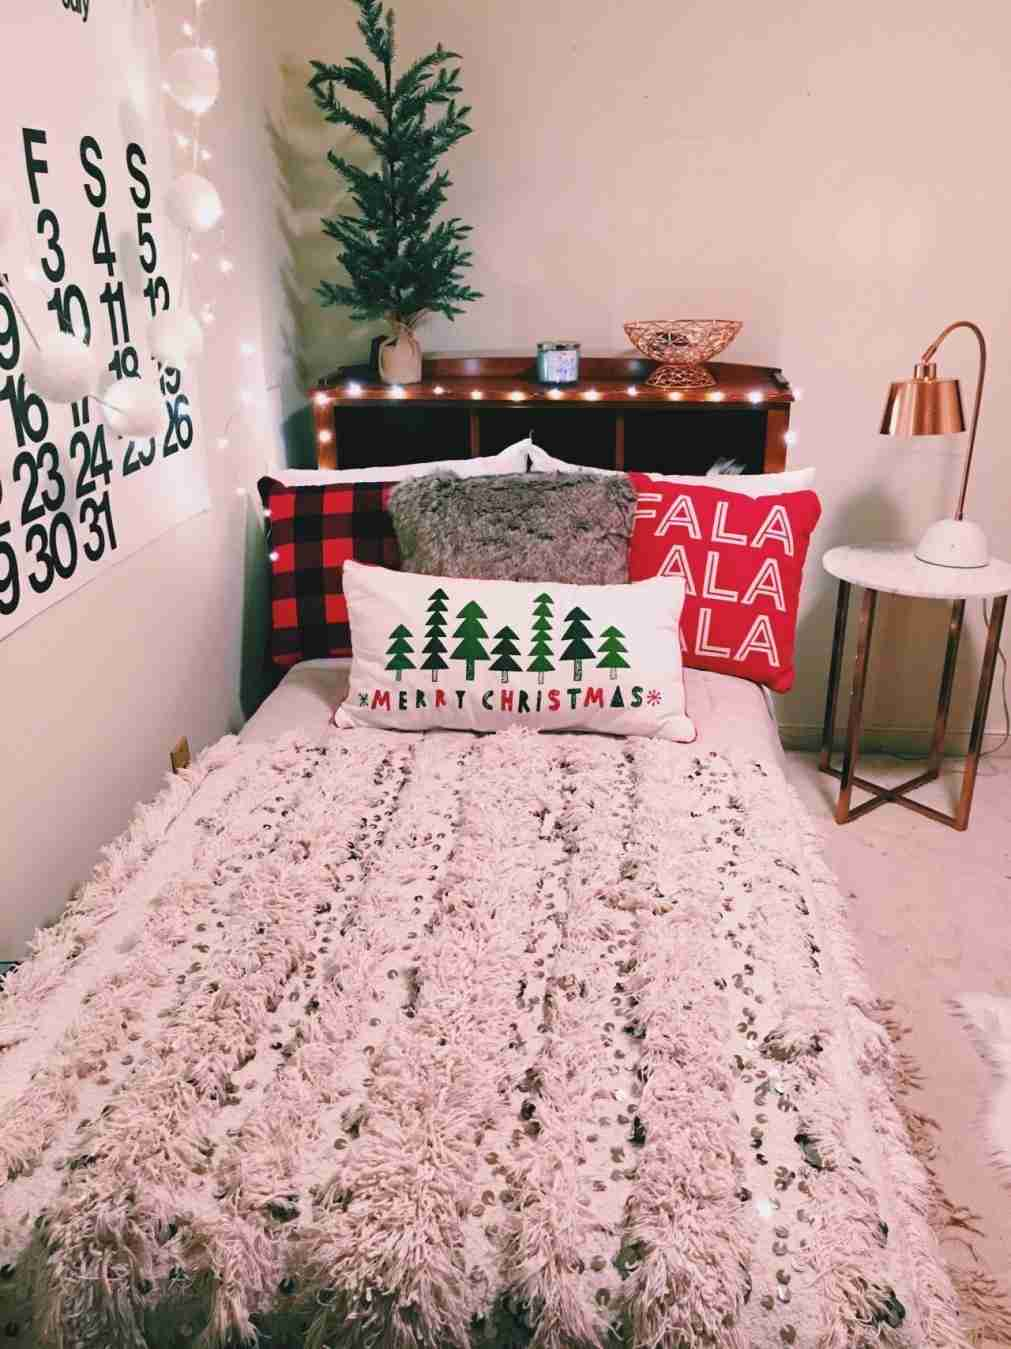 PSA These Are The Christmas Decorations Your Bedroom Needs christmas decorations PSA: These Are The Christmas Decorations Your Bedroom Needs PSA These Are The Christmas Decorations Your Bedroom Needs 3